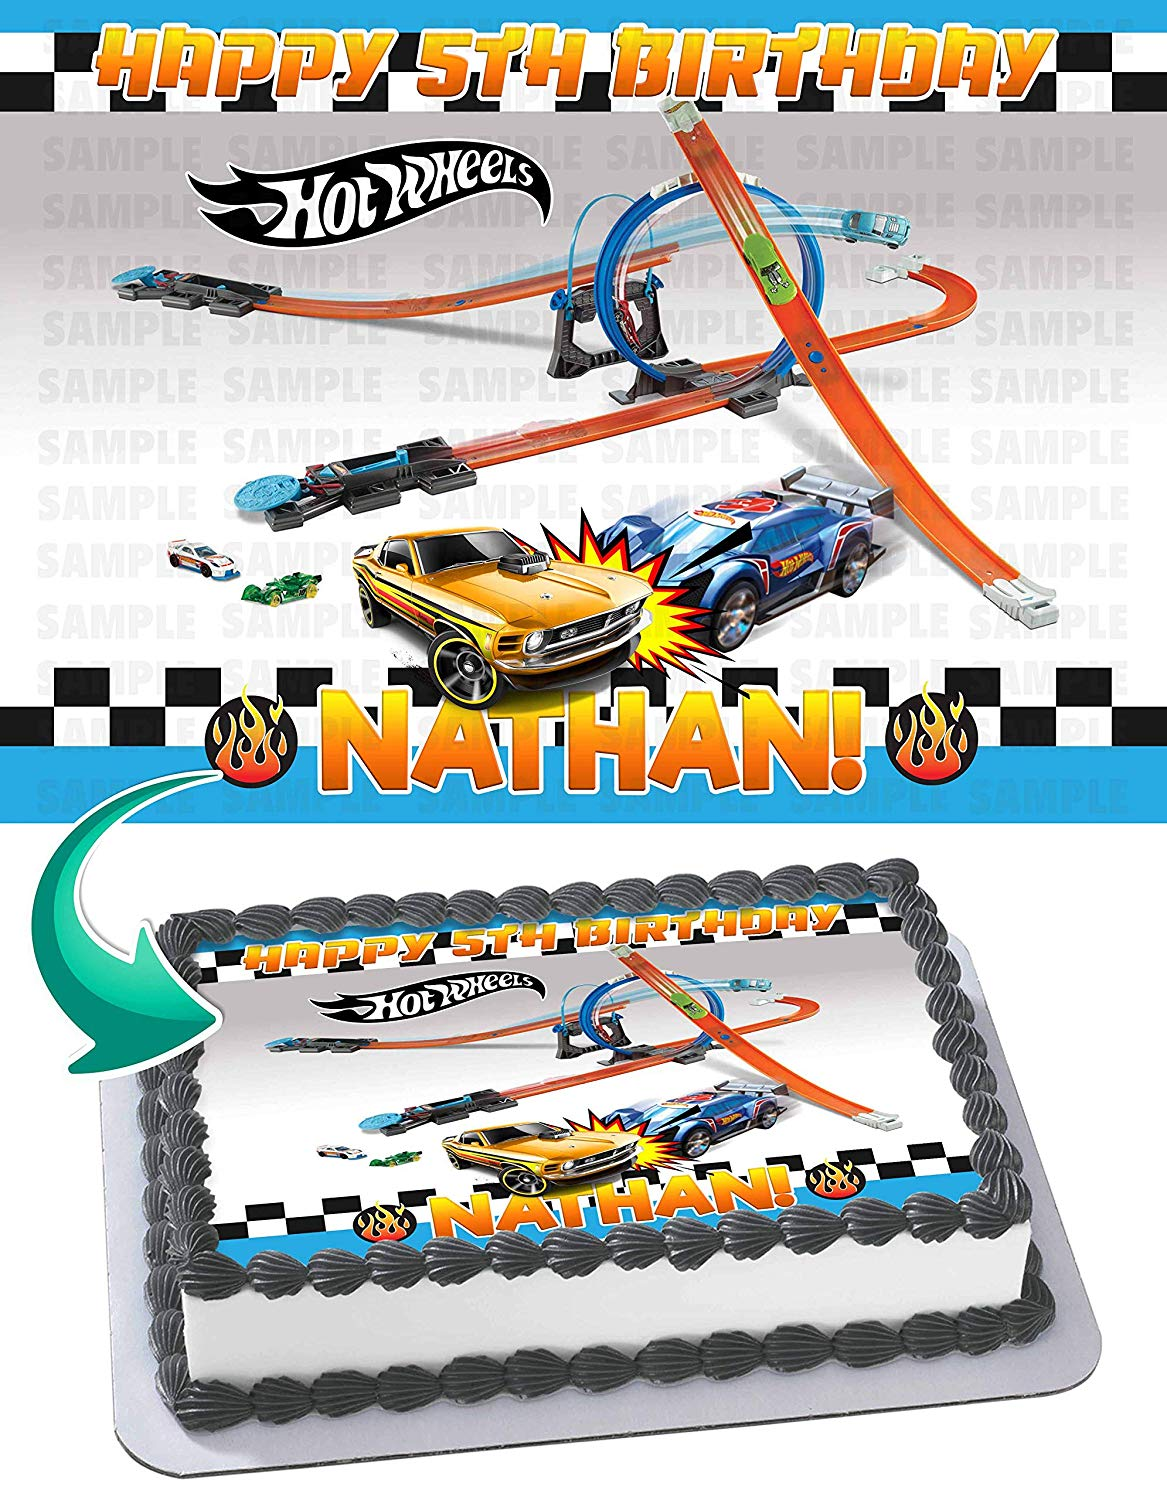 Astonishing Hot Wheels Cars 2 Edible Cake Image Topper Personalized Birthday Birthday Cards Printable Opercafe Filternl